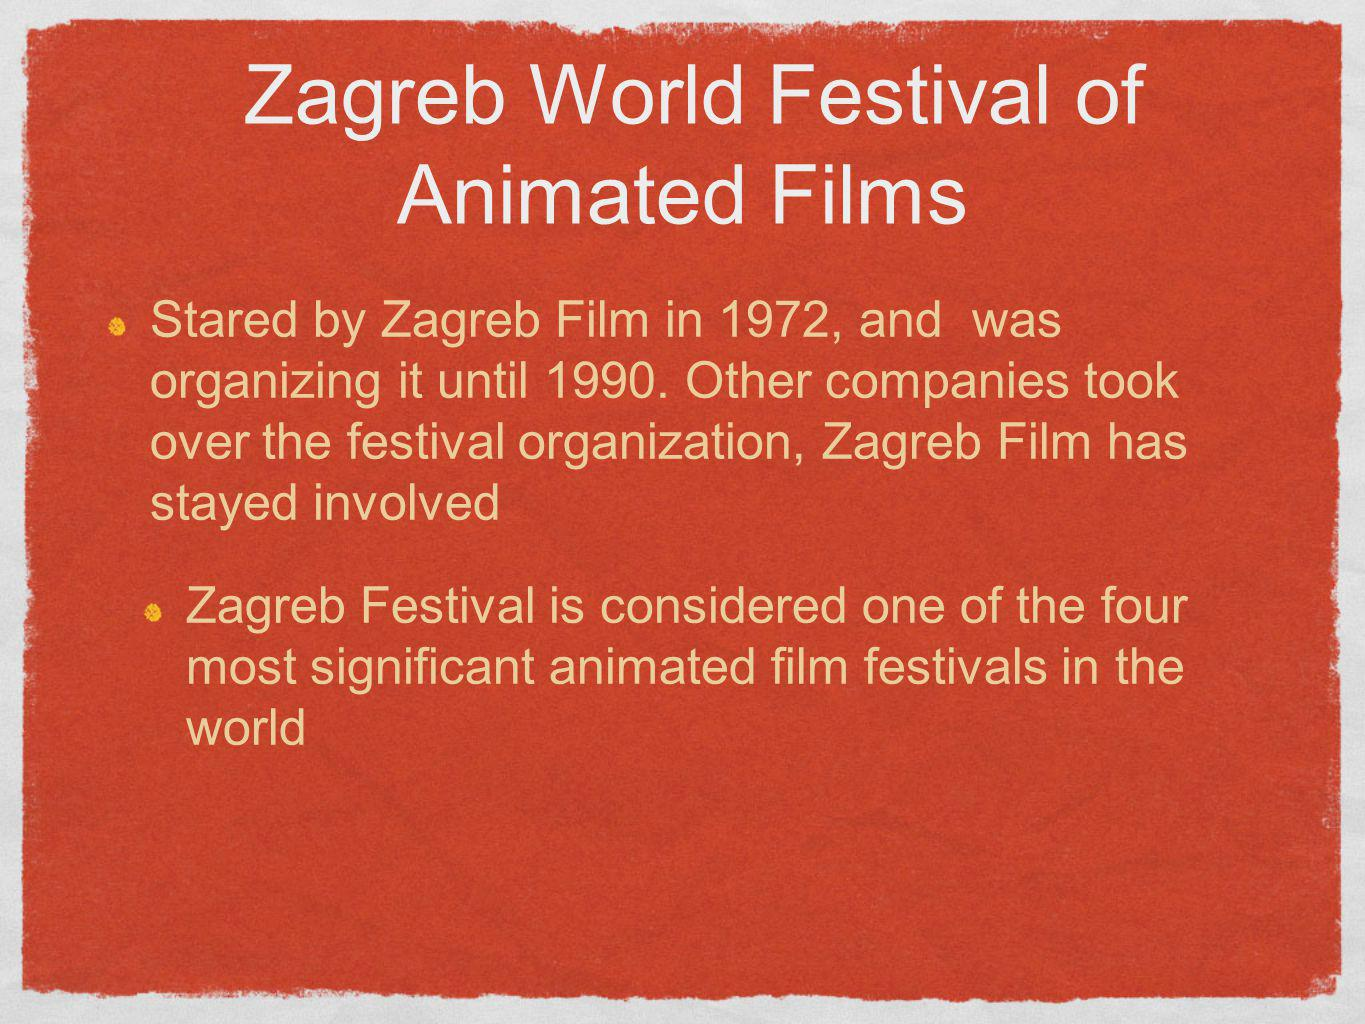 Zagreb World Festival of Animated Films